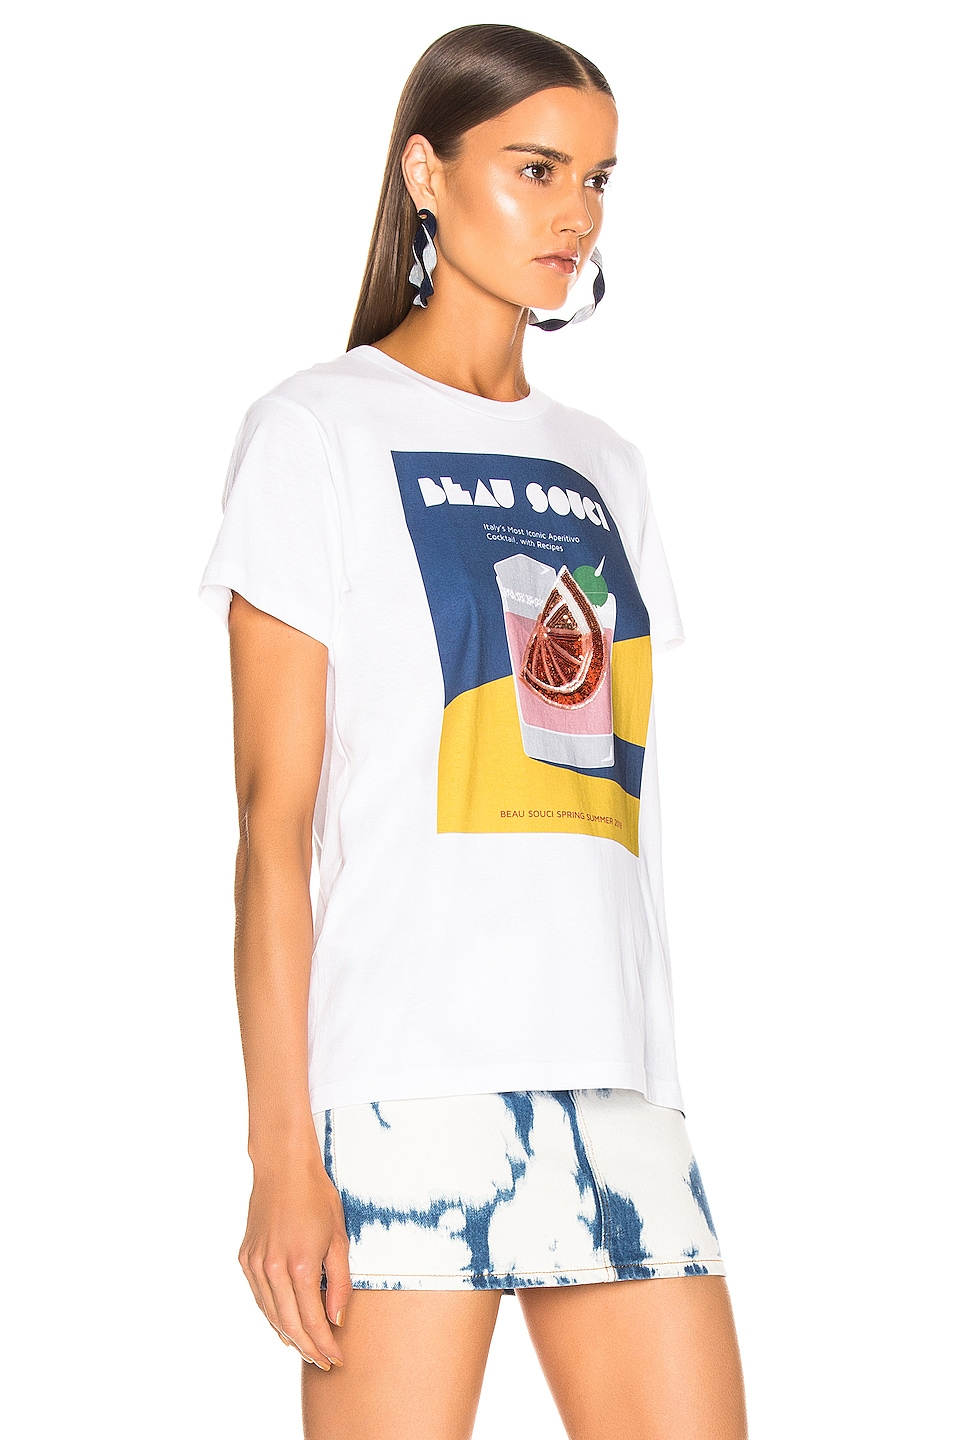 Image 3 of BEAU SOUCI Wedge Tee in White & Multi